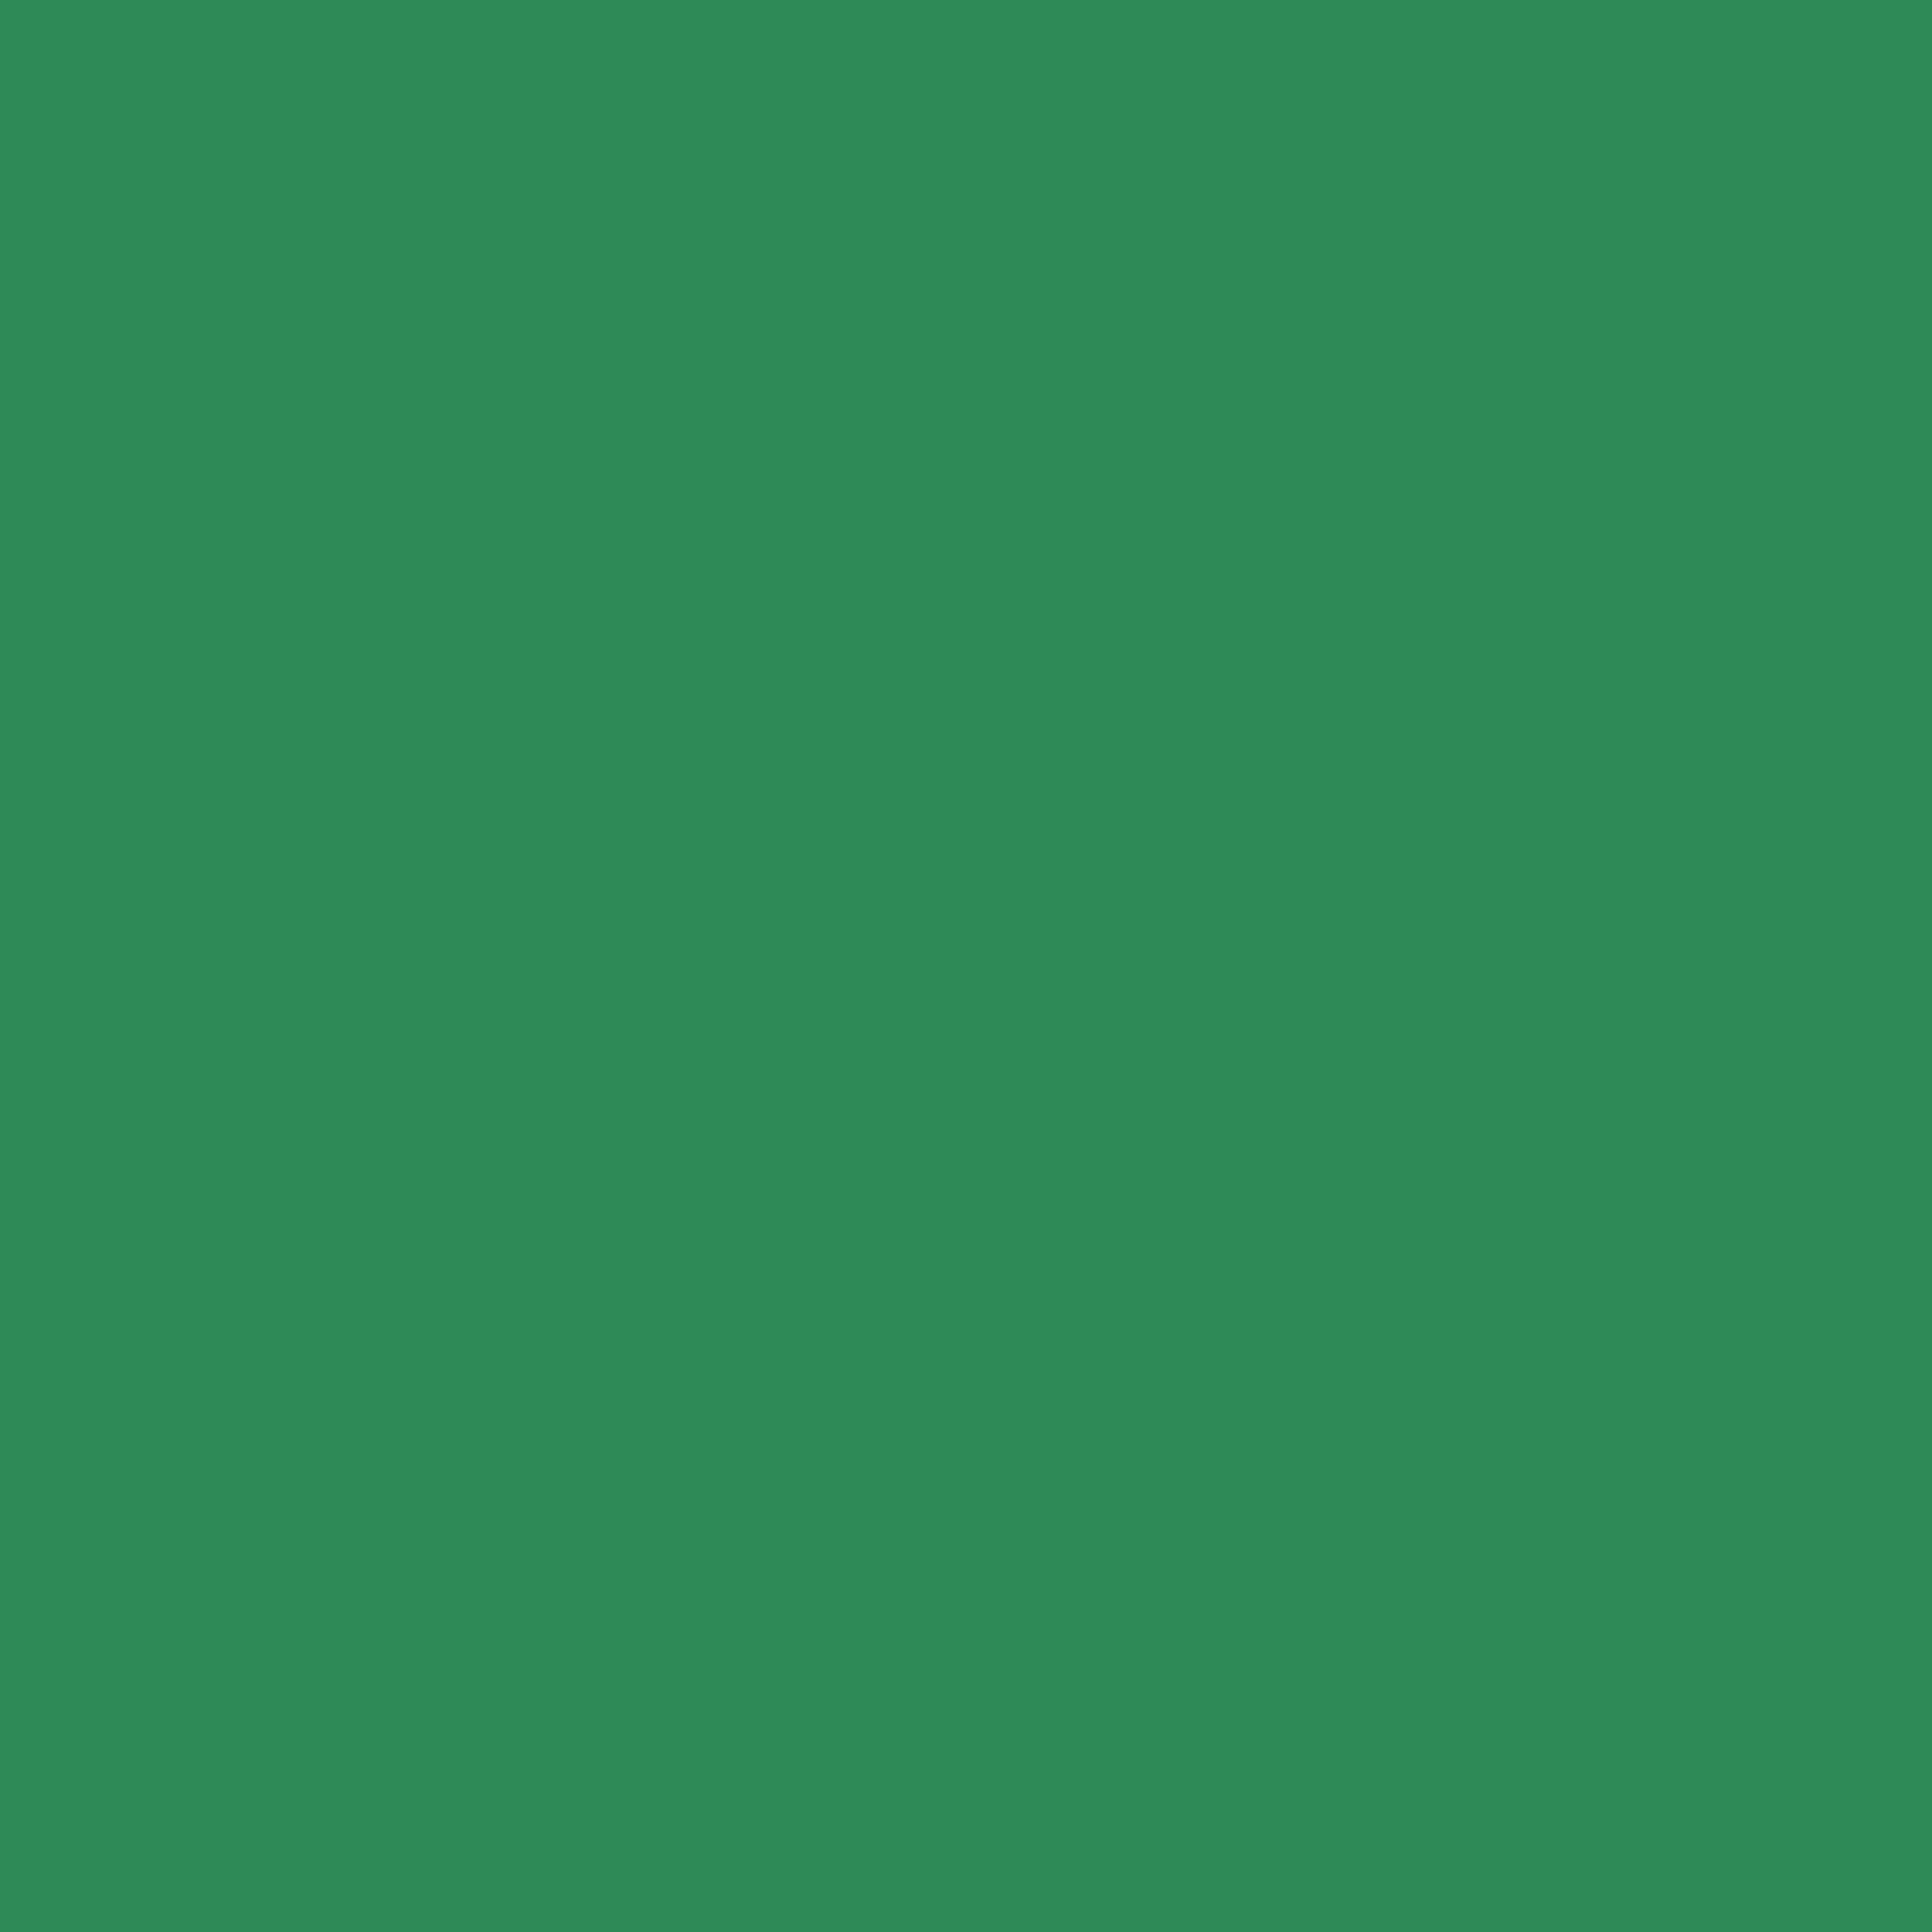 2732x2732 Sea Green Solid Color Background